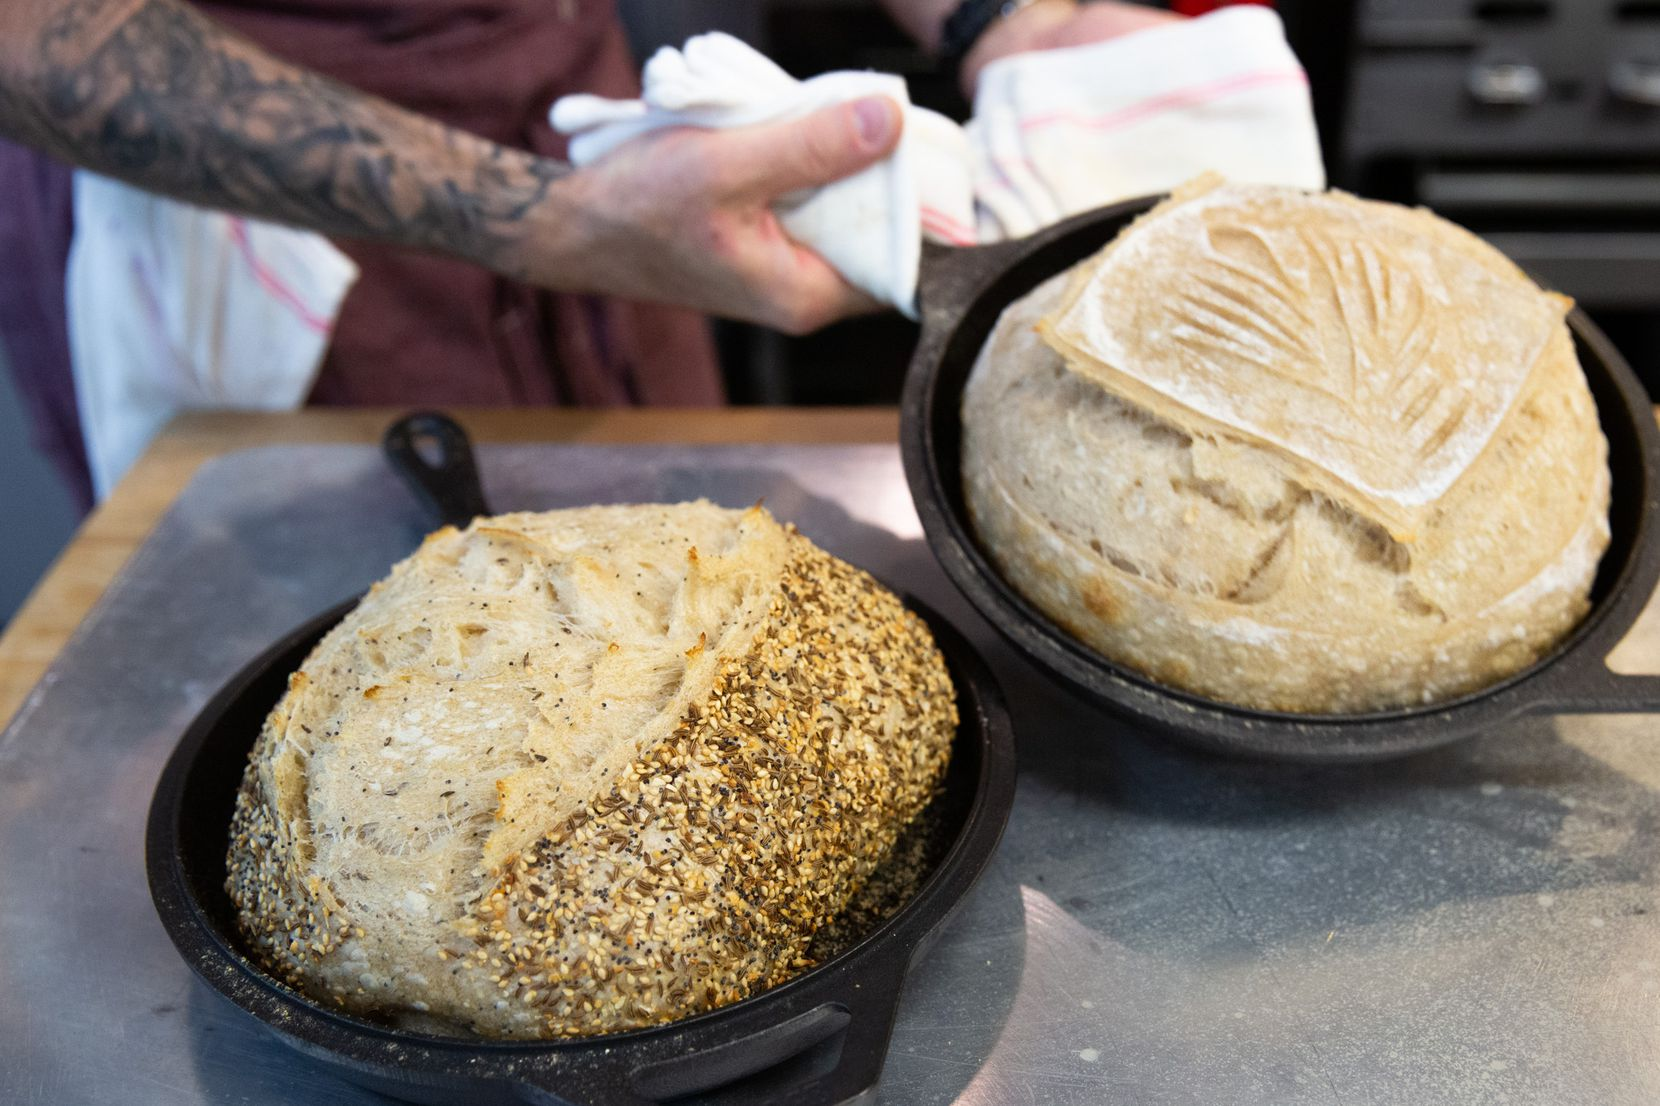 Matt Bresnan's sourdough breads will be available at Brown Bag Provisions.